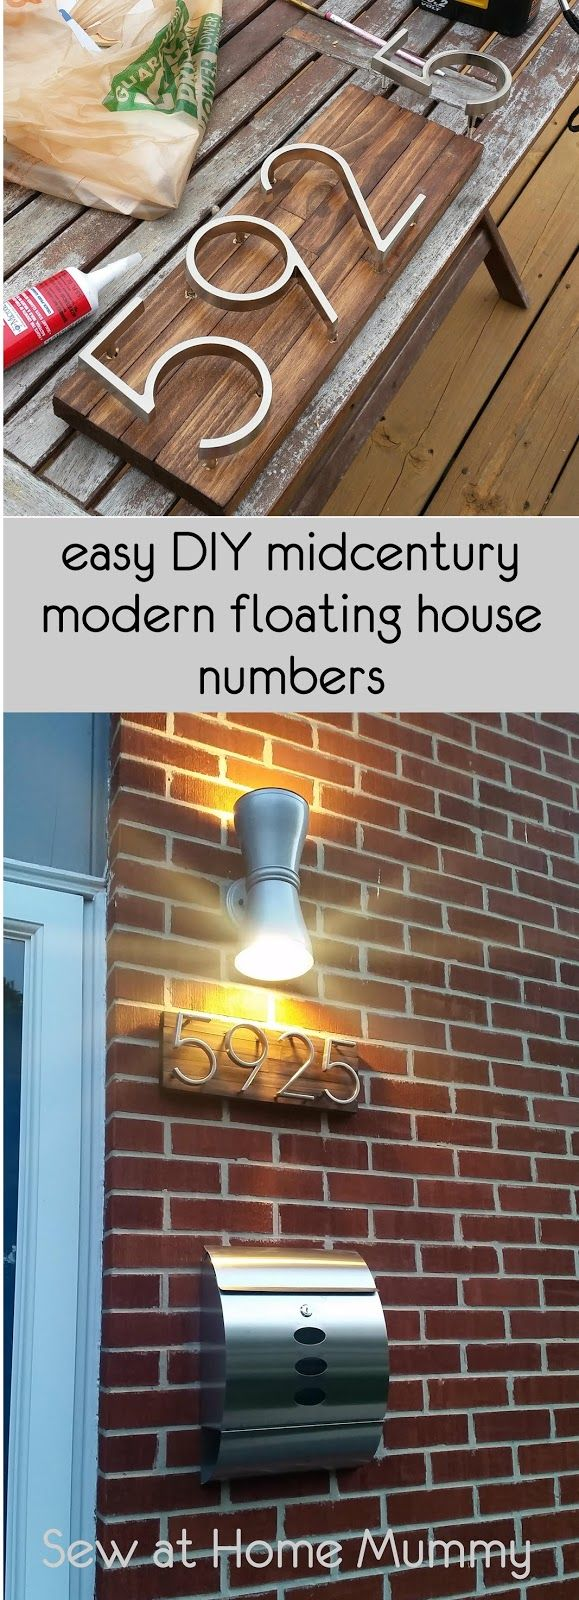 Modern homes los angeles brentwood untouched 1960 mid century modern - Mid Century Modern House Numbers Tutorial Using Home Depot Paint Sticks